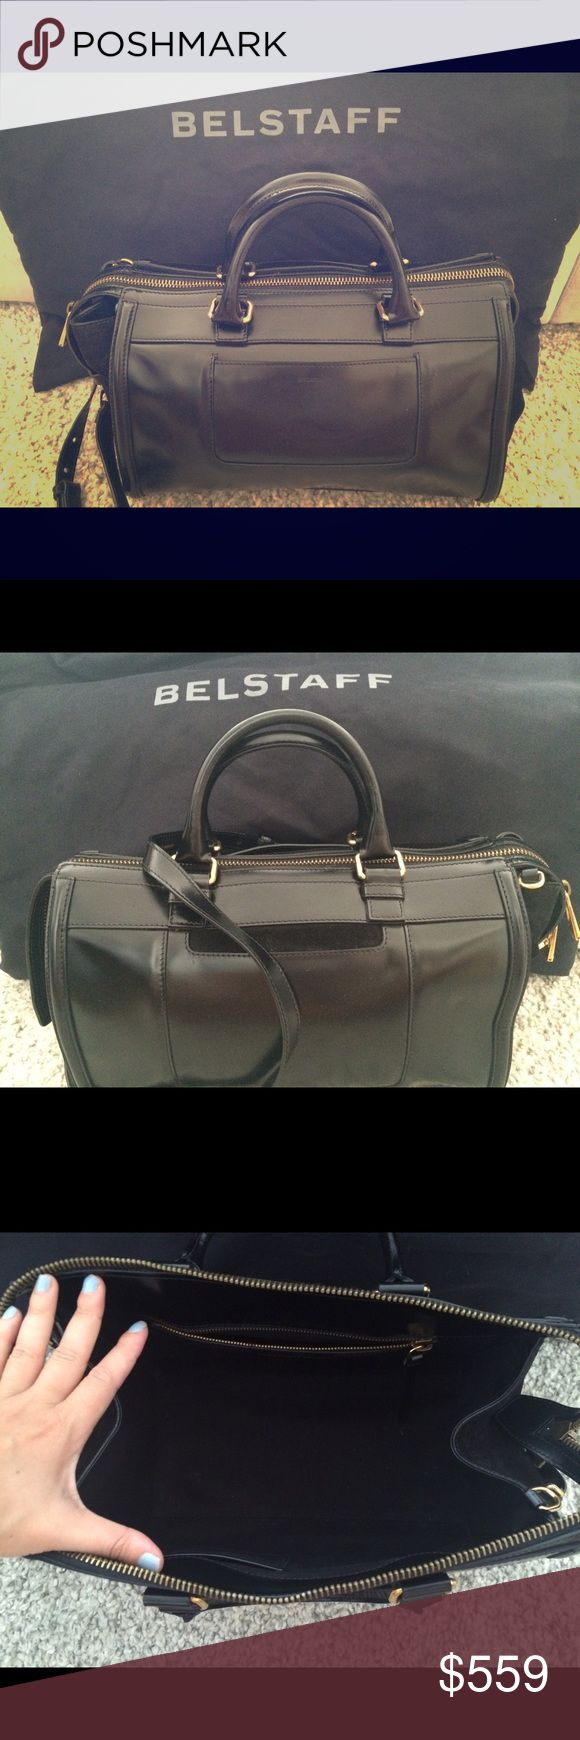 "Belstaff Shoulder Bag Black Belstaff Catherine shoulder bag.  Glossy leather with suede side gussets and brass hardware. Removable, adjustable shoulder strap.Extended, two-way zip top.Two exterior open pockets. Inside, faille lining; one zip and one open pocket. Metal feet protect the bottom of the bag.9""H x 12 1/2""W x 7""D.Made in Italy. I was bought this as a present and just don't find myself using it that often. It's in great condition. Comes with materiel Belstaff protective bag cover…"